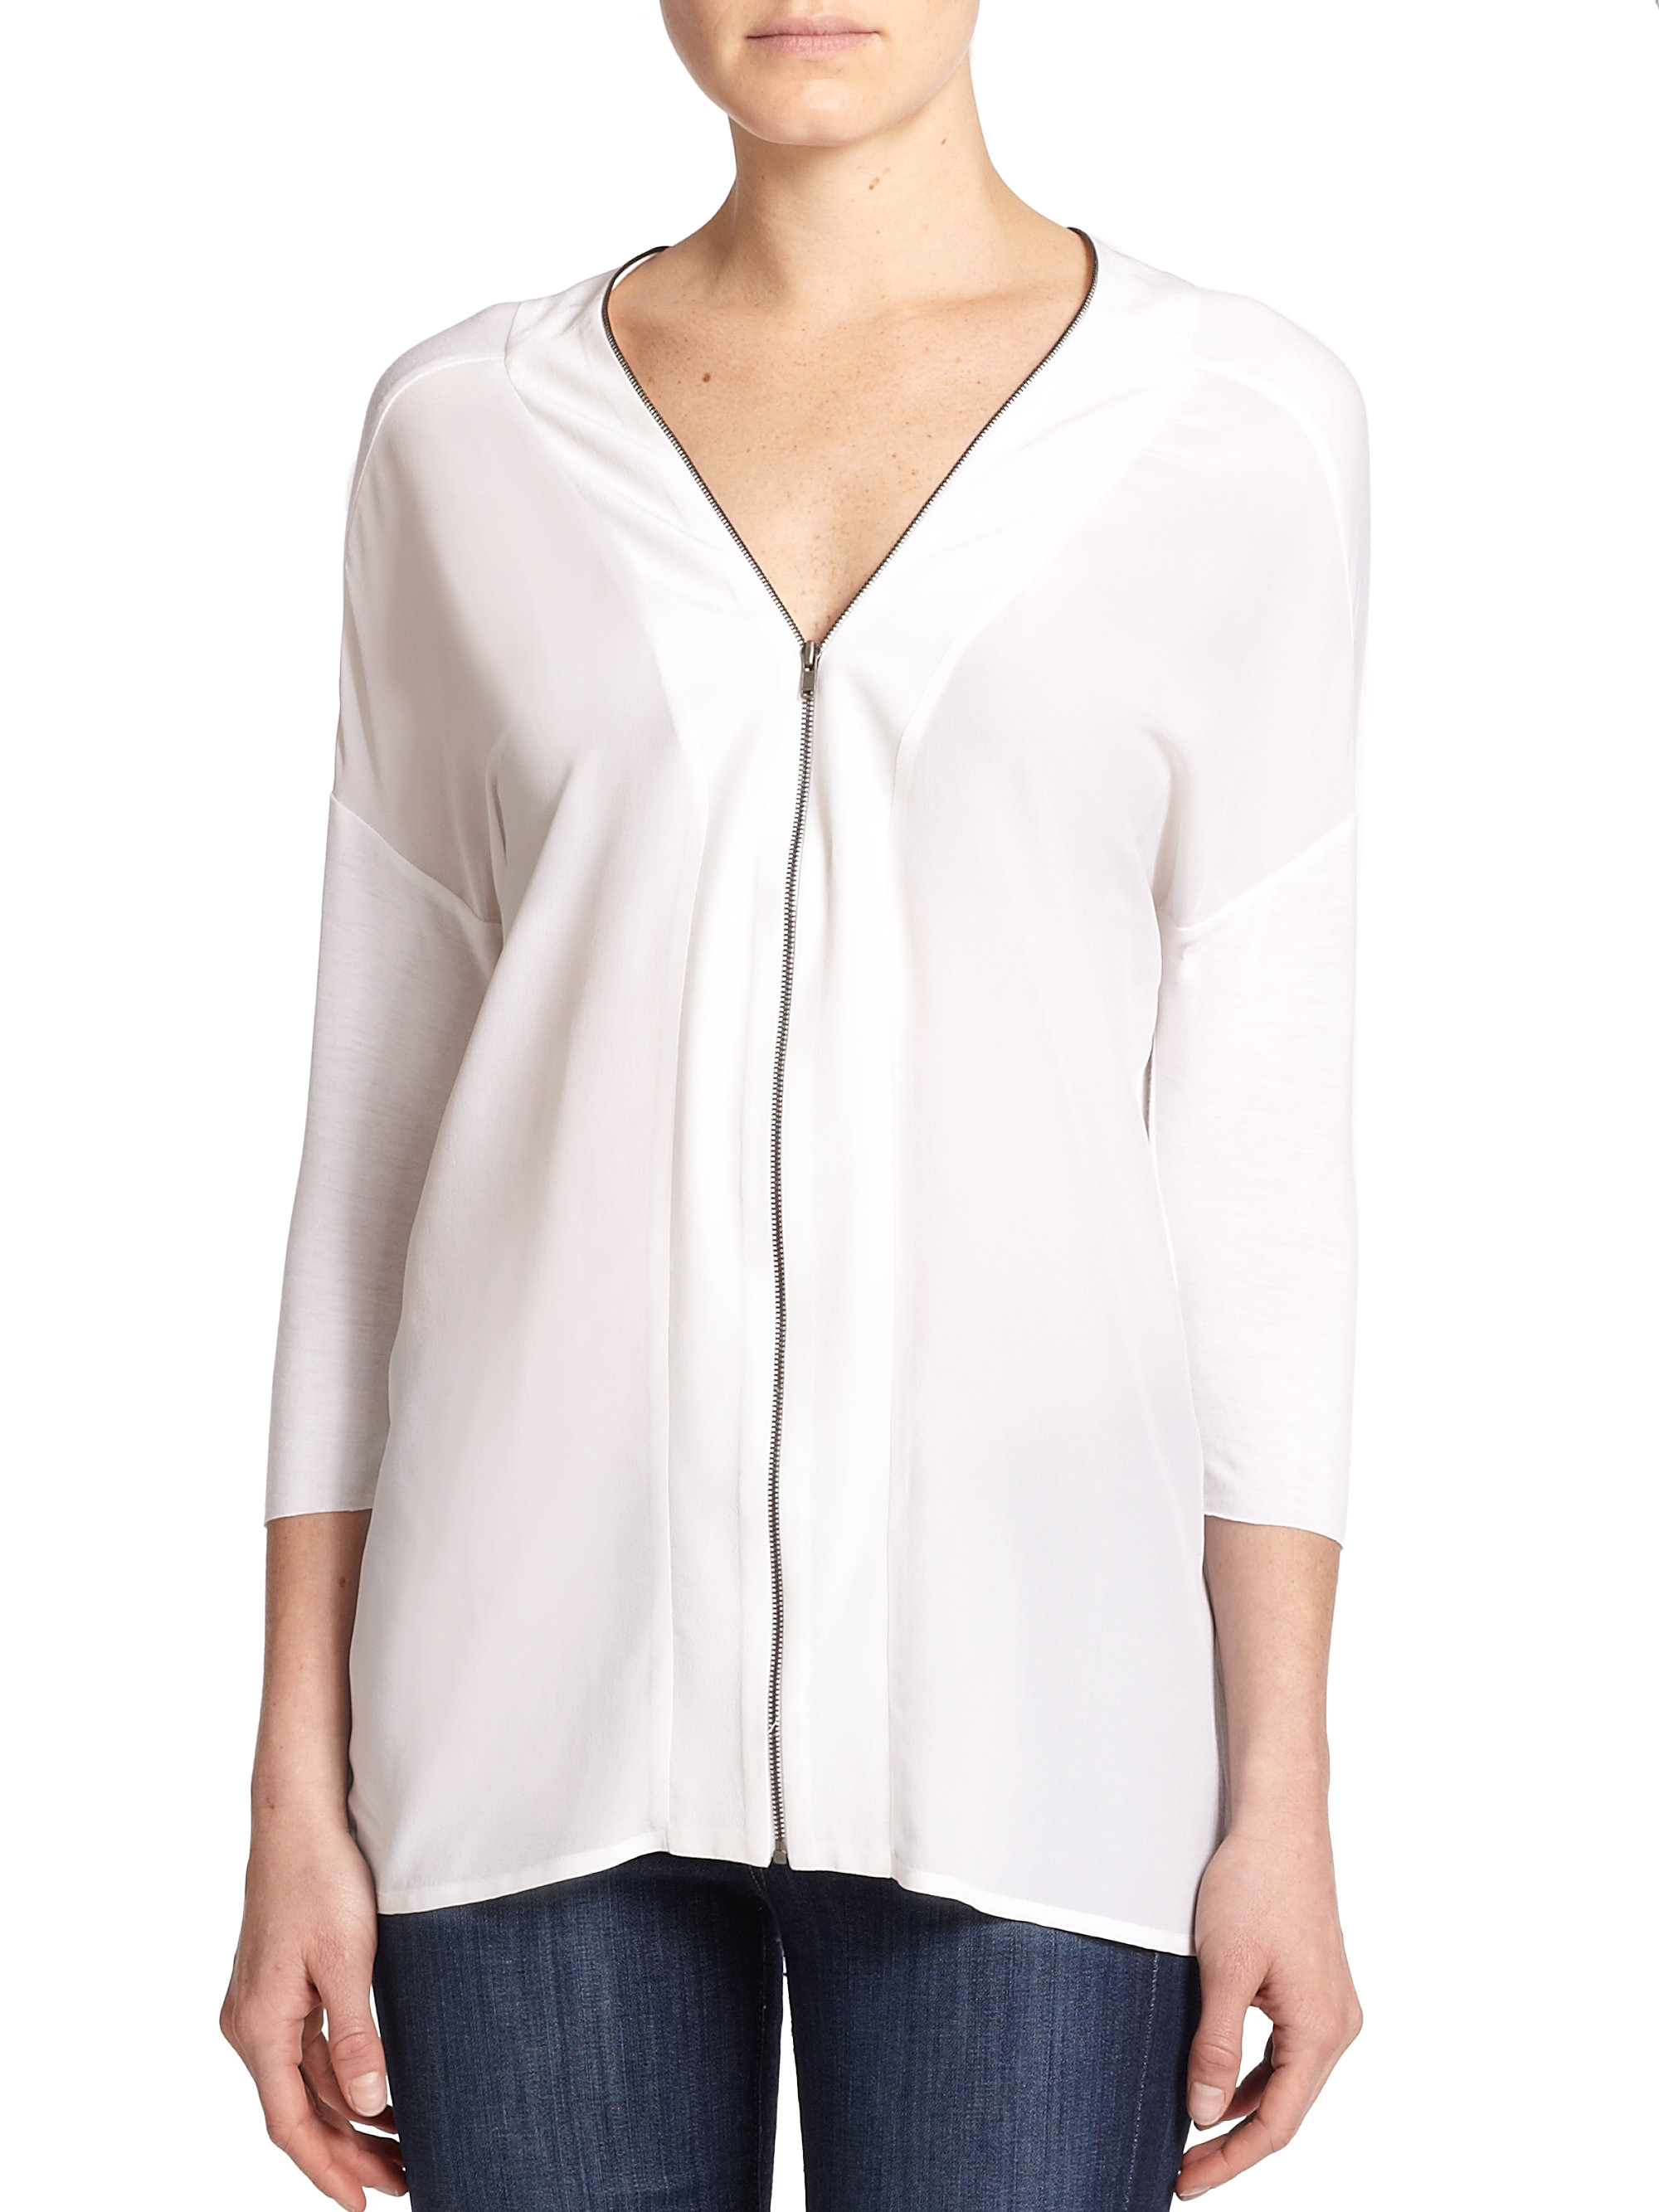 Zip Front Blouse White 73